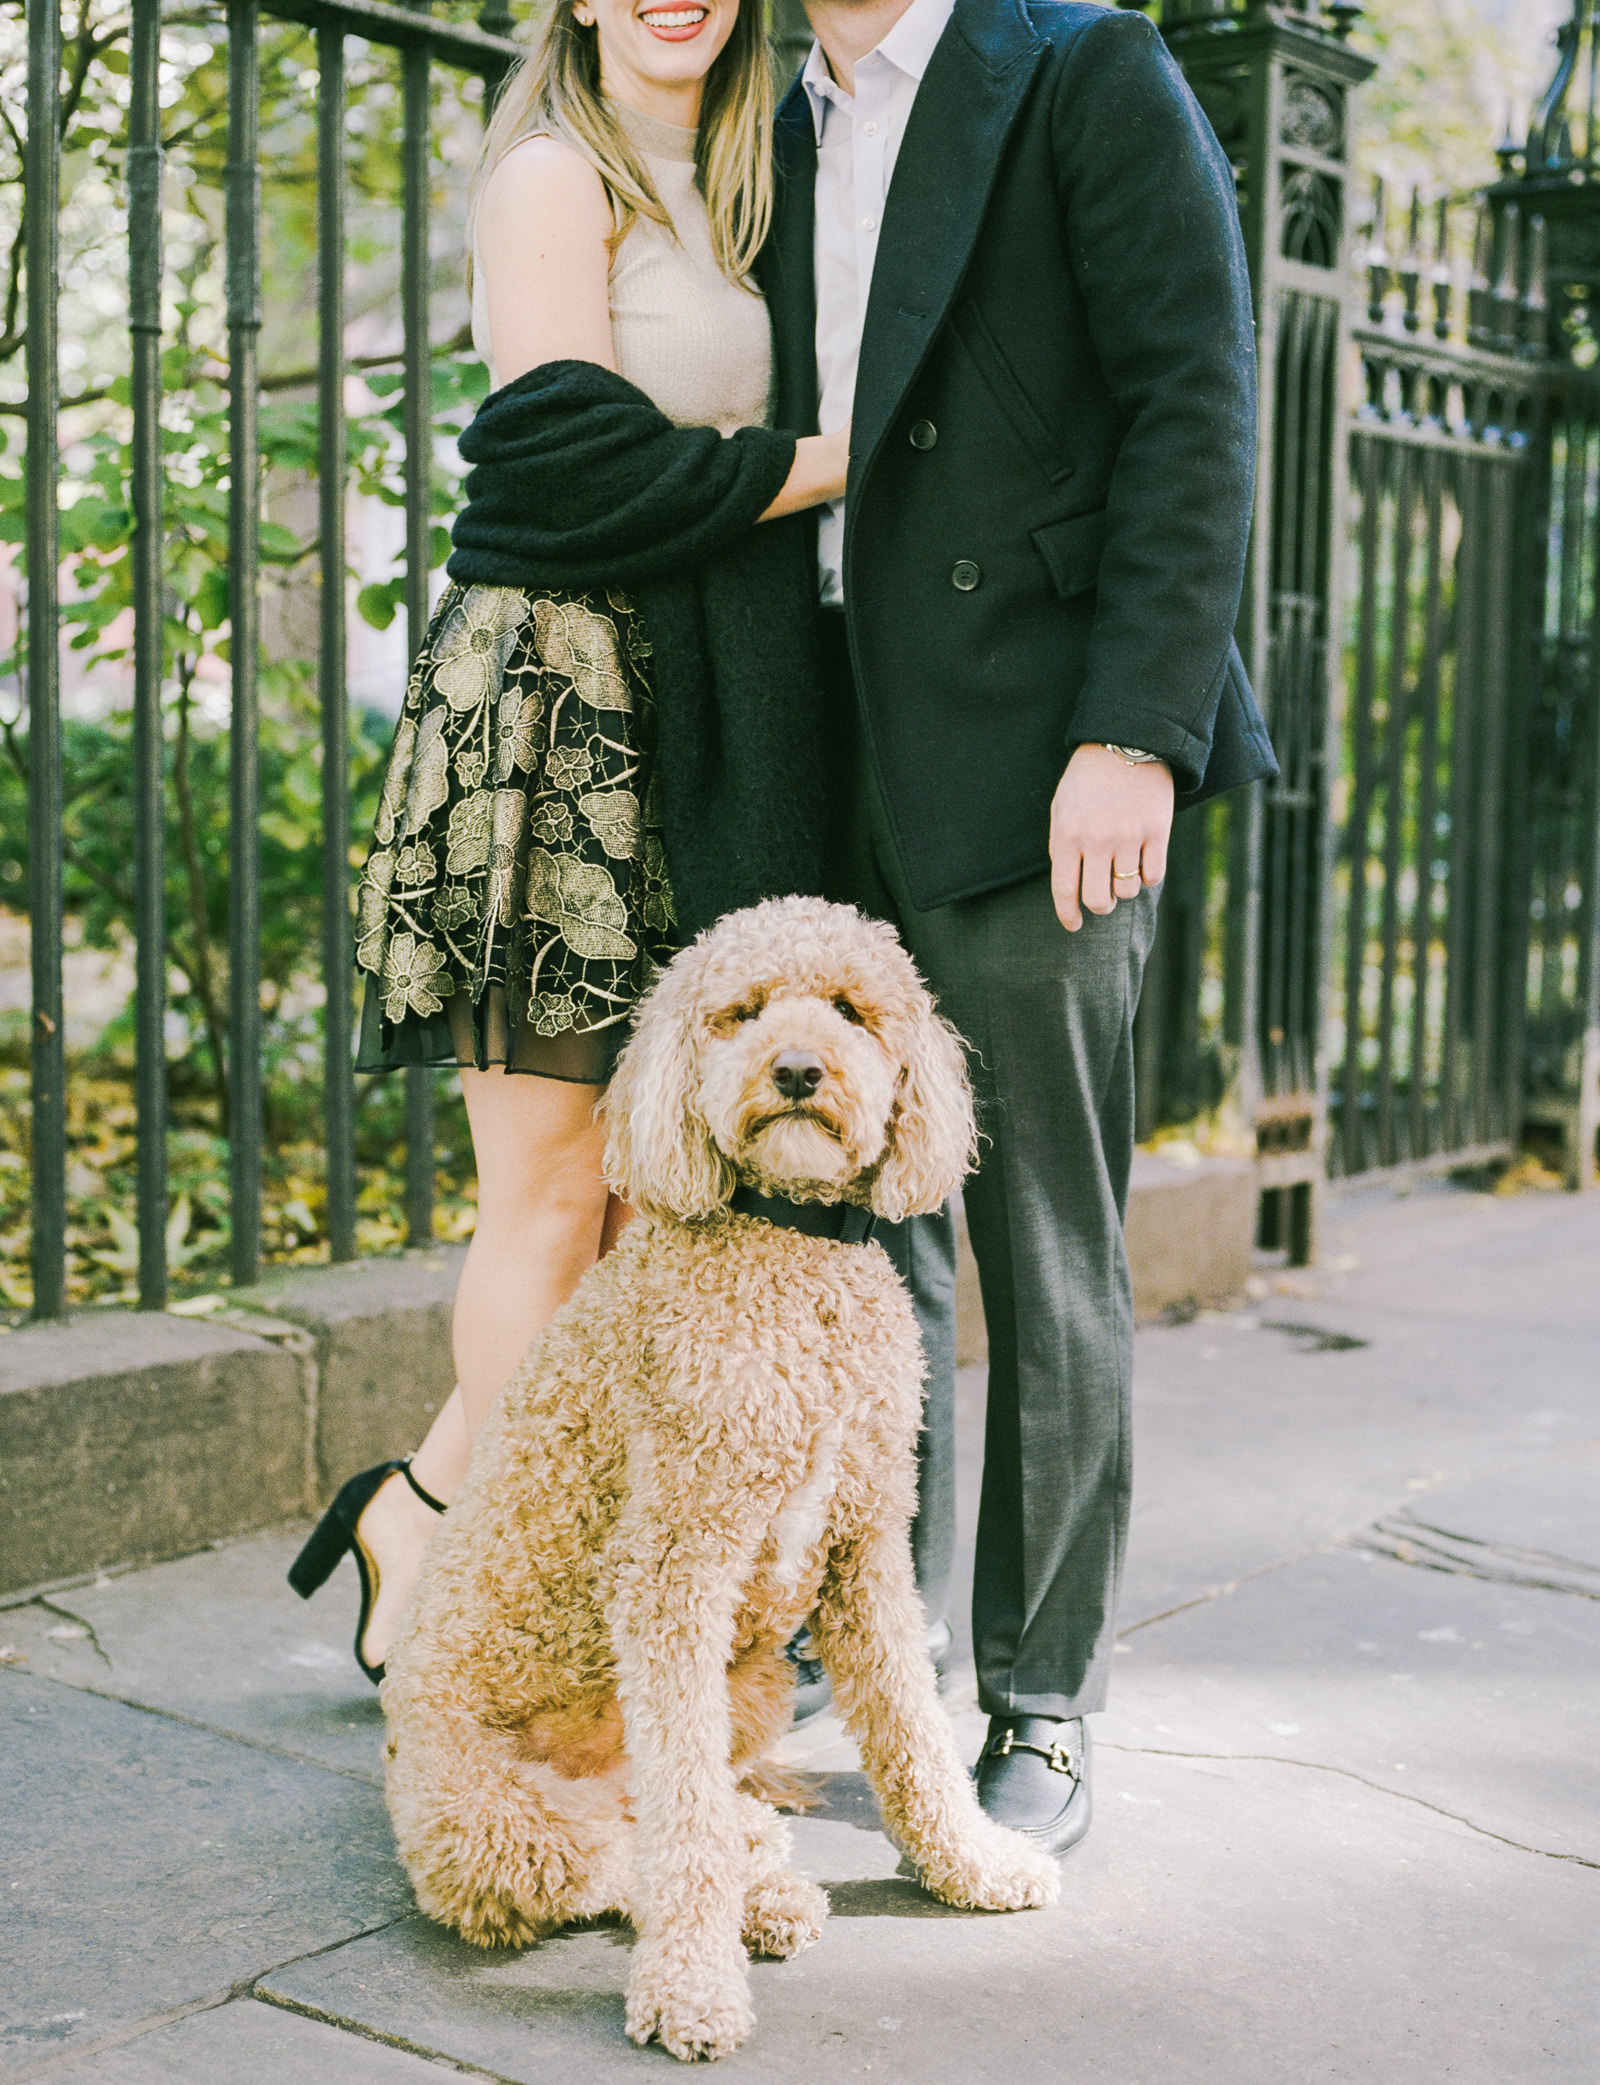 Central-park-fall-engagement-session-by Tanya Isaeva-94.jpg